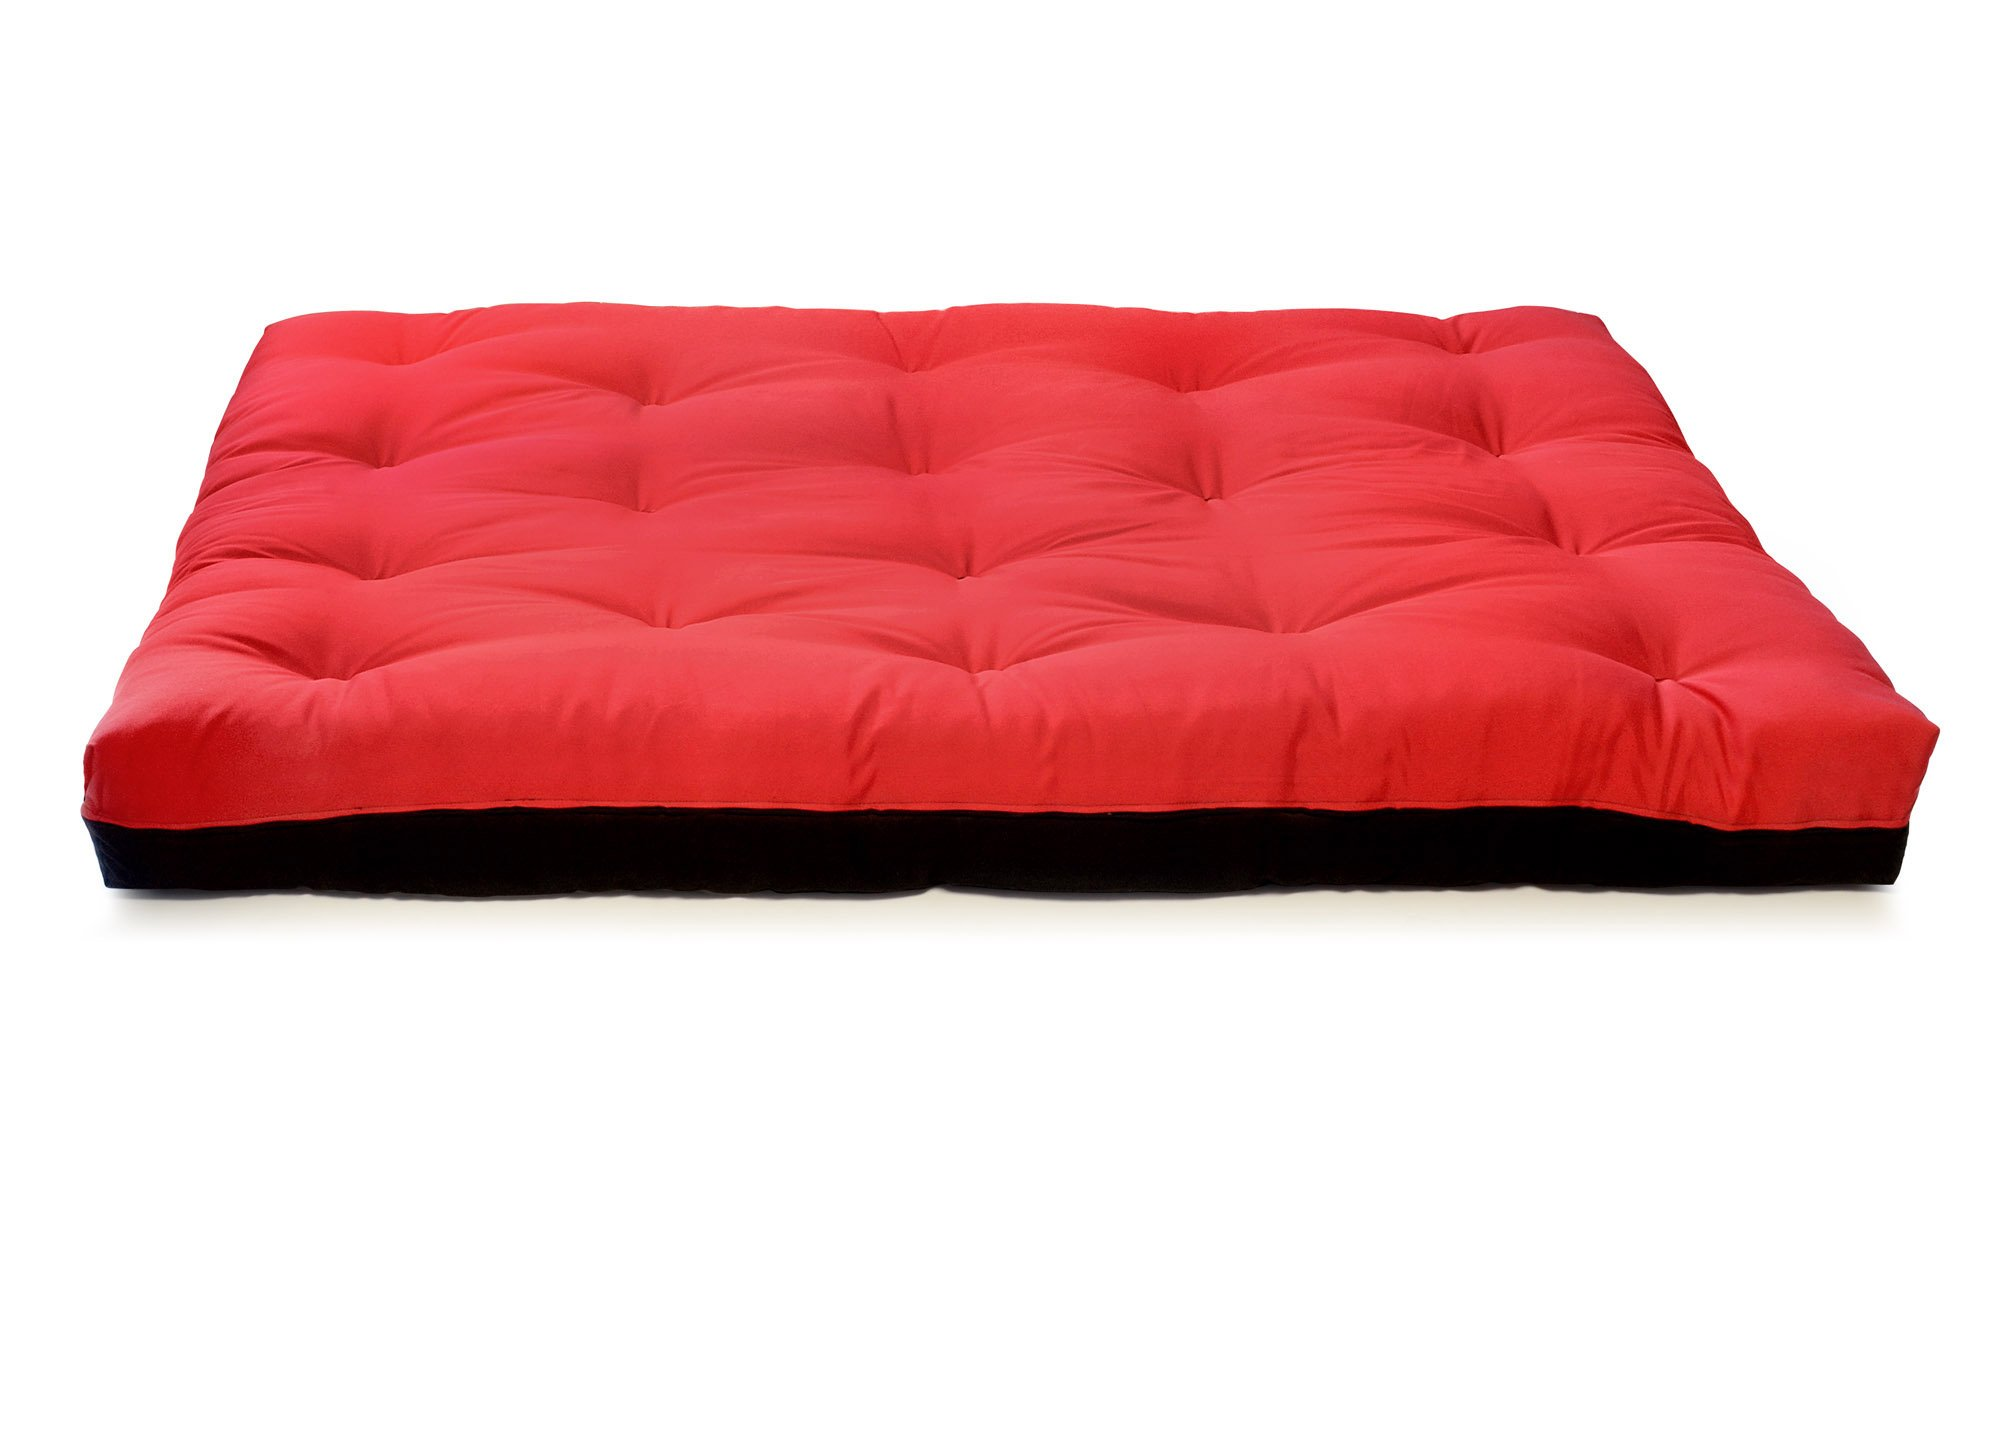 Artiva USA Home Deluxe 8-Inch Futon Sofa Mattress Made in US Best Quality, Full, Solid, Black & Red